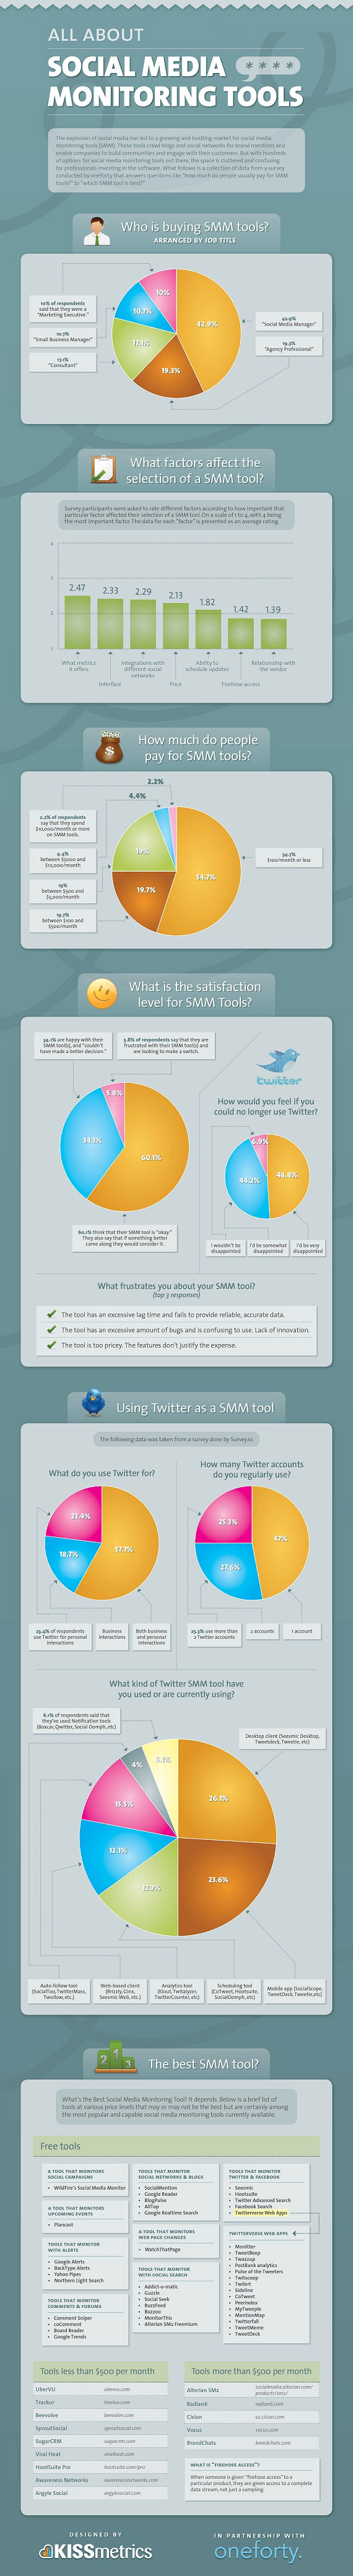 Mortgage-Social-Media-Monitoring-Tools-Infographic